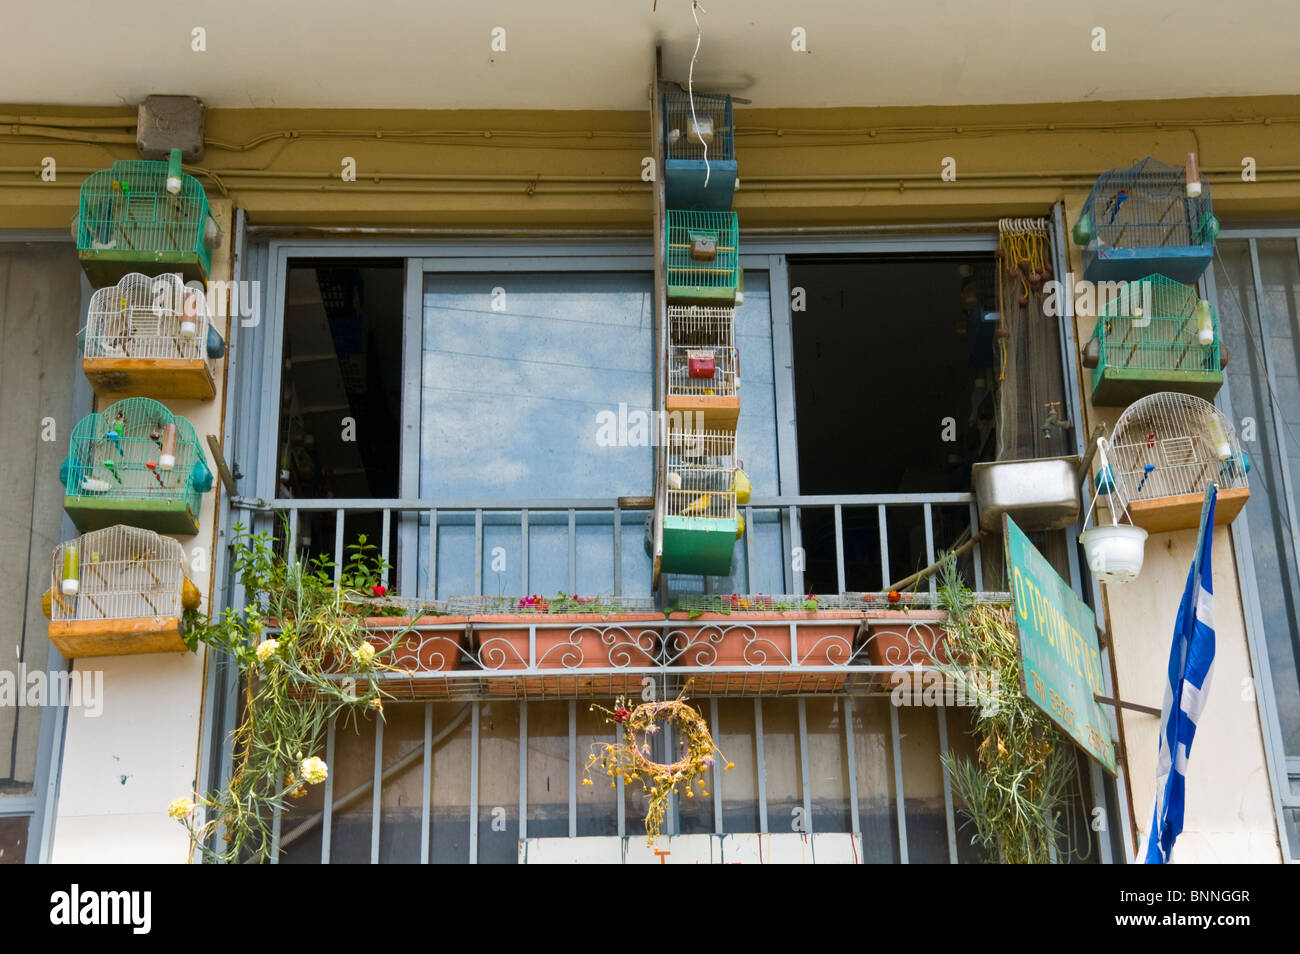 Cages of song birds hanging on balcony outside first floor apartment in old Corfu Town on the Greek island of Corfu - Stock Image